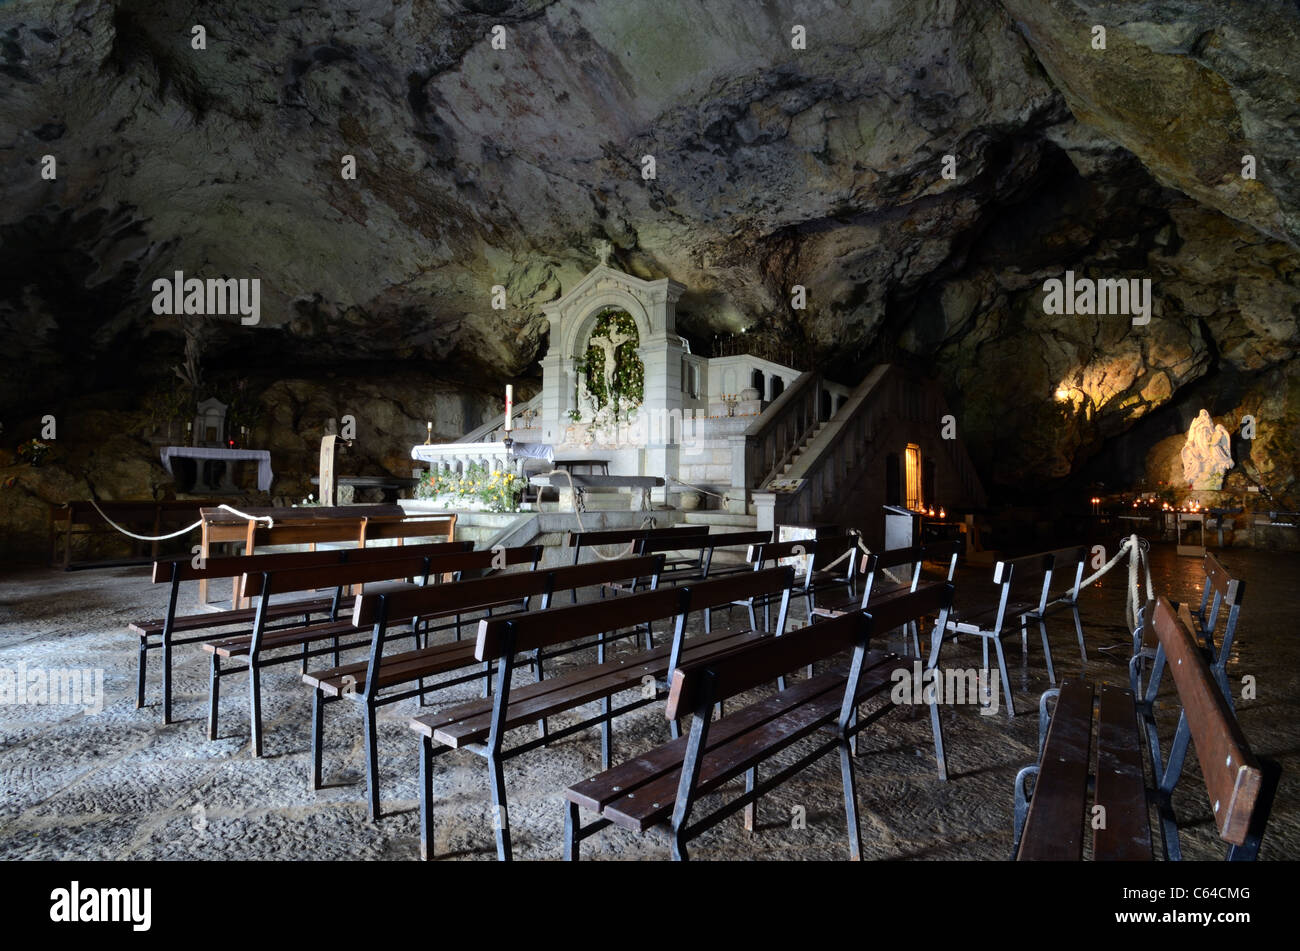 Mary Magdalene Holy Cave, Shrine or Grotto, Sainte-Baume Massif or Sainte Baume, Provence, France - Stock Image